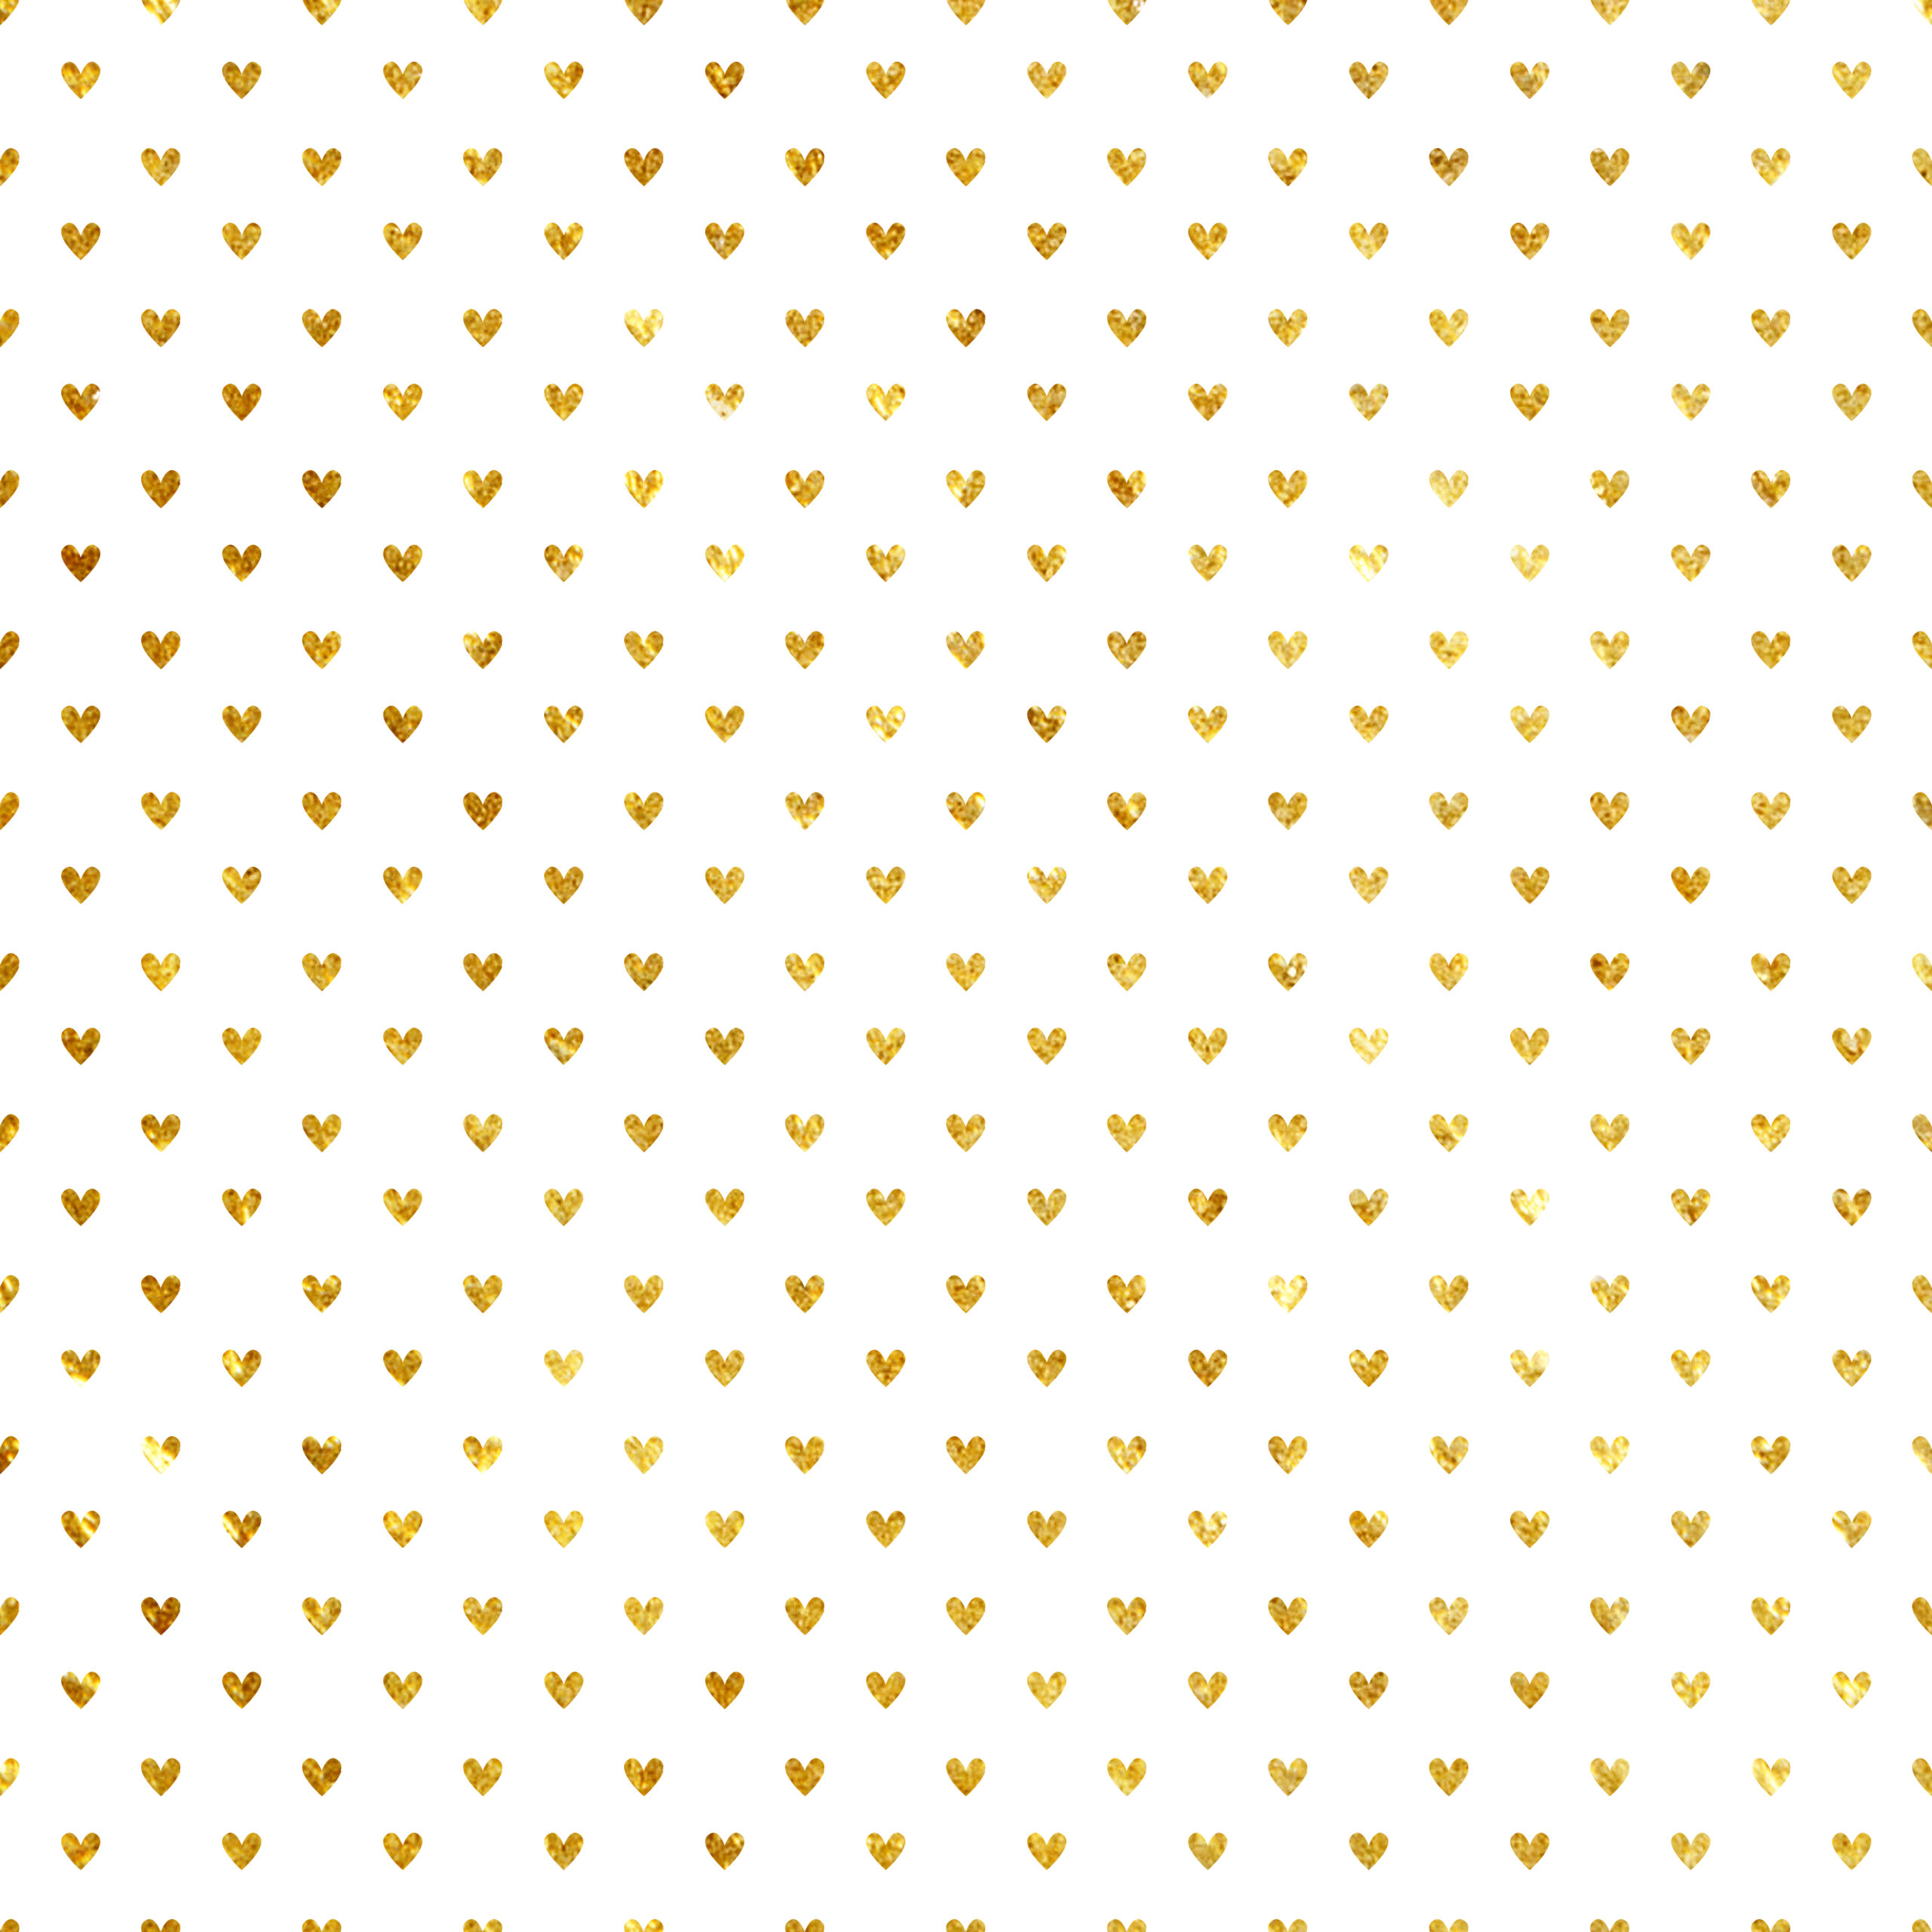 Scrapbook paper images - Free Digital Scrapbook Paper Coral Gold And White